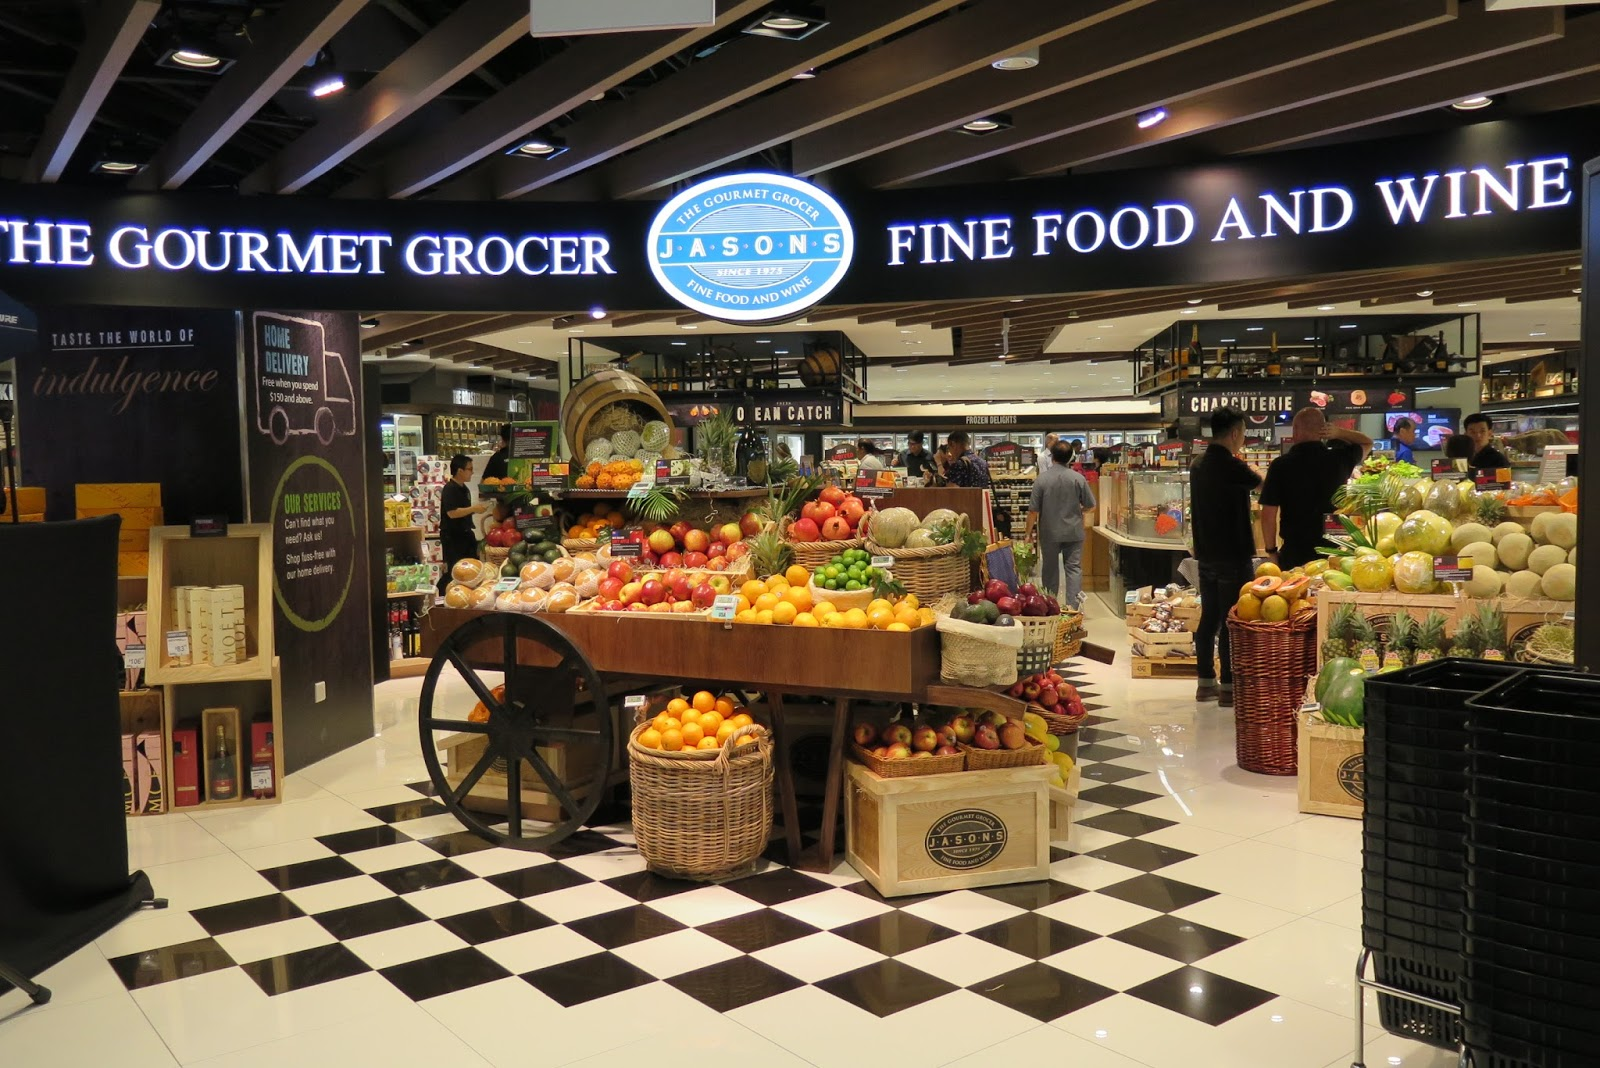 Home Decor Luxury Jasons The Gourmet Grocer Redefining Gourmet Food And